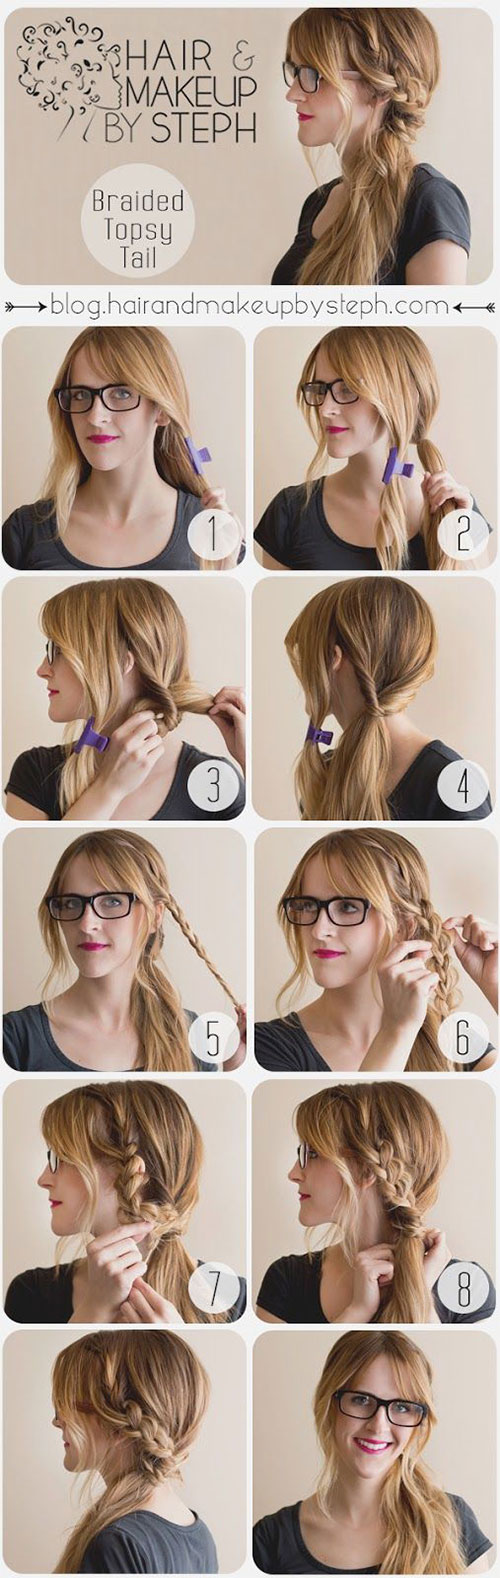 20 Easy Step By Step Summer Braids Style Tutorials For Beginners 2015 Modern Fashion Blog